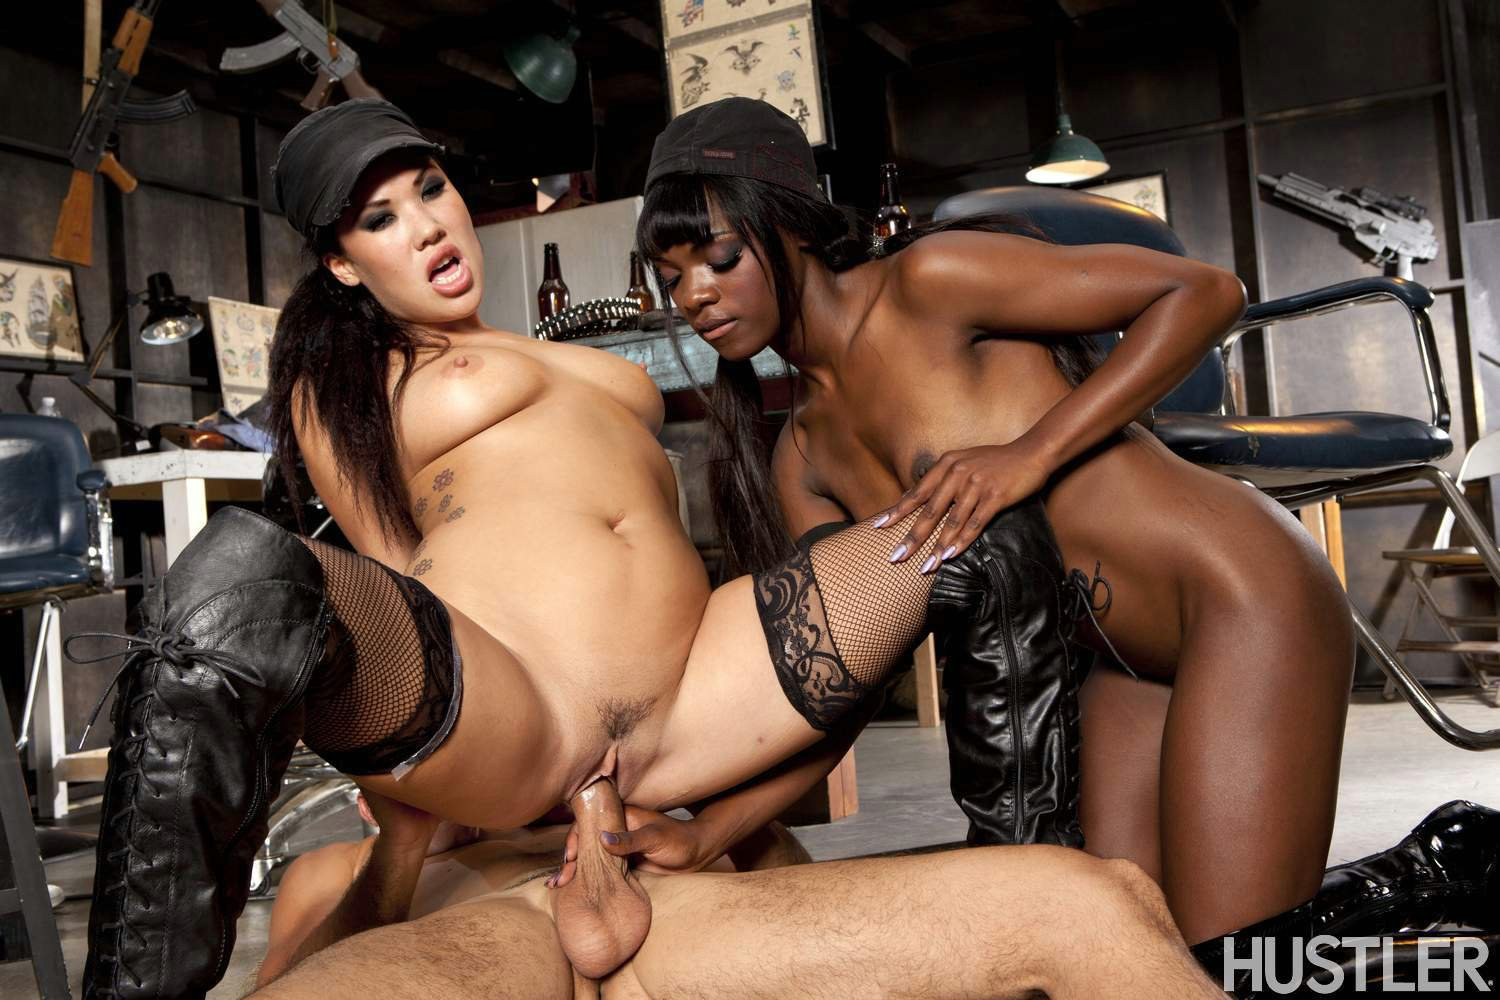 All ana foxxx in sizzling hot interracial threesome concurrence What